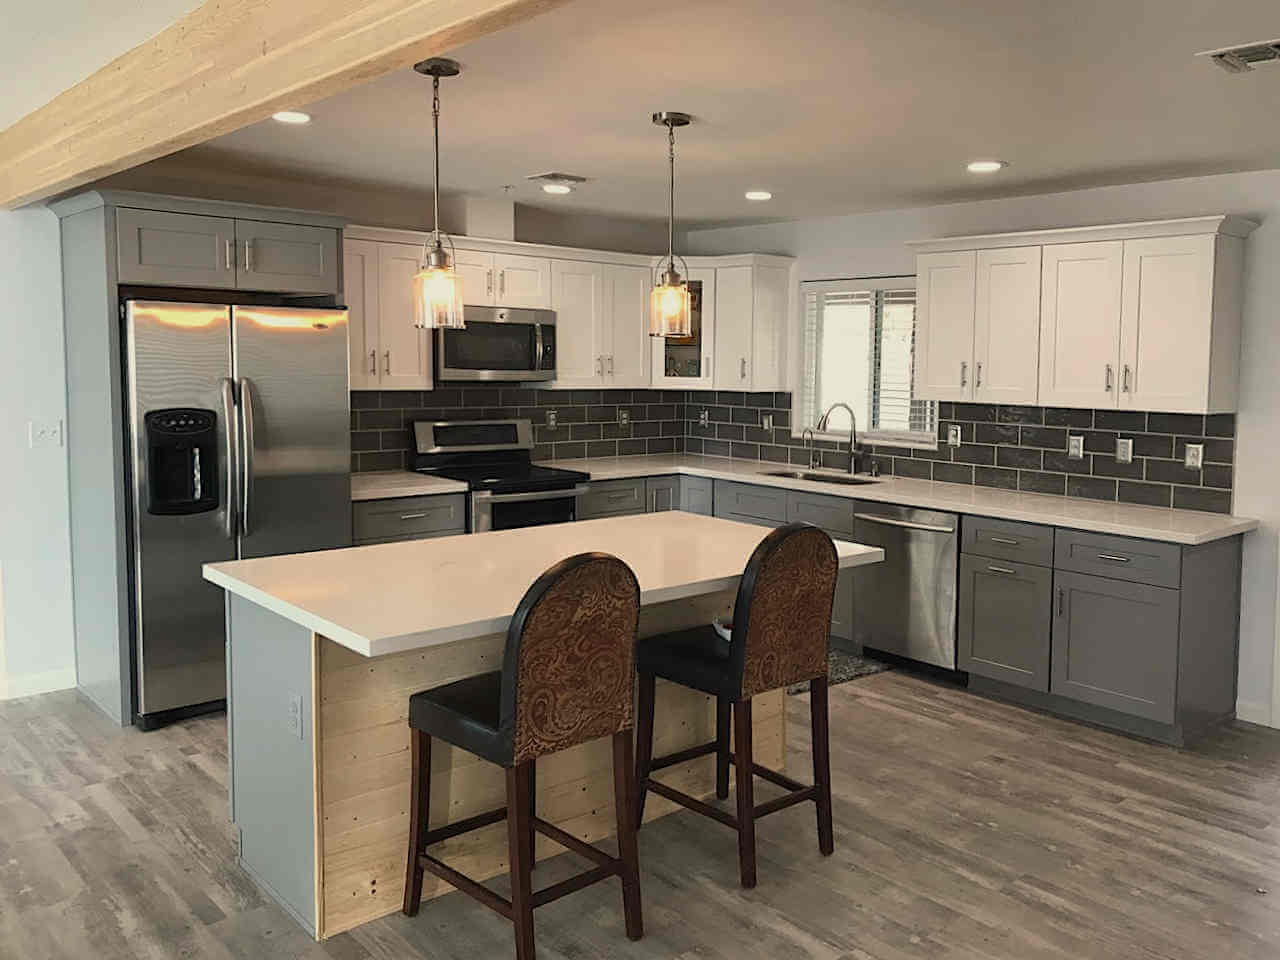 Scottsdale kitchen remodel- gray and white cabinets